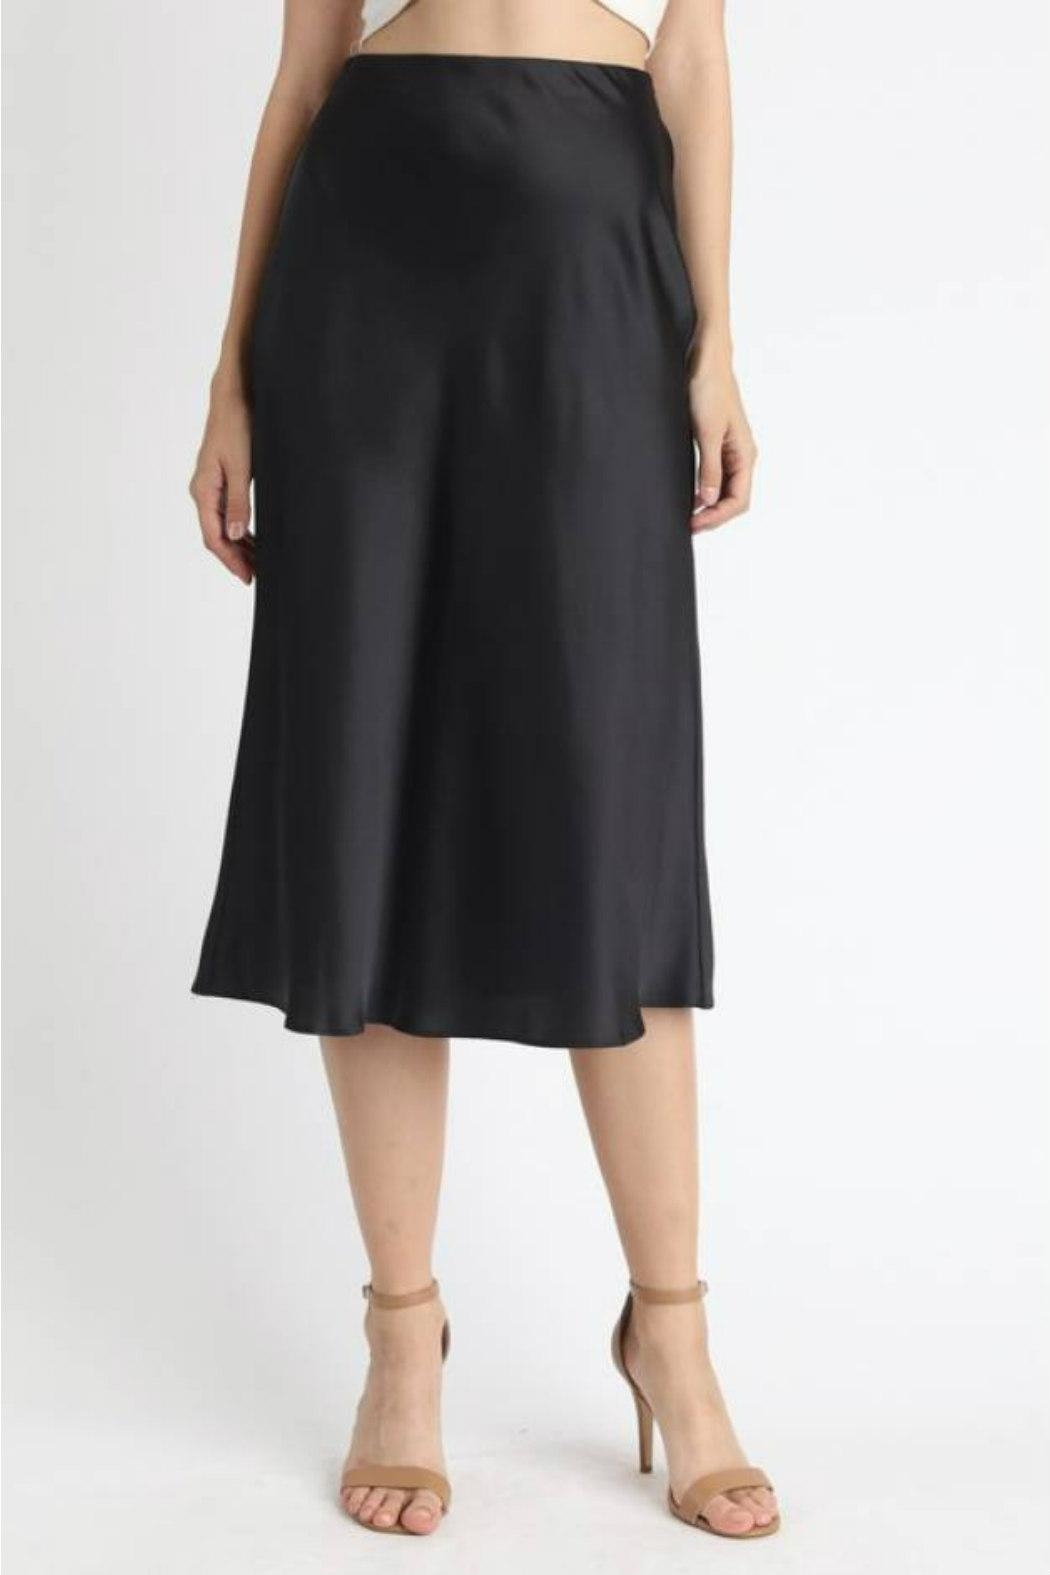 essue Satin Midi Skirt - Main Image